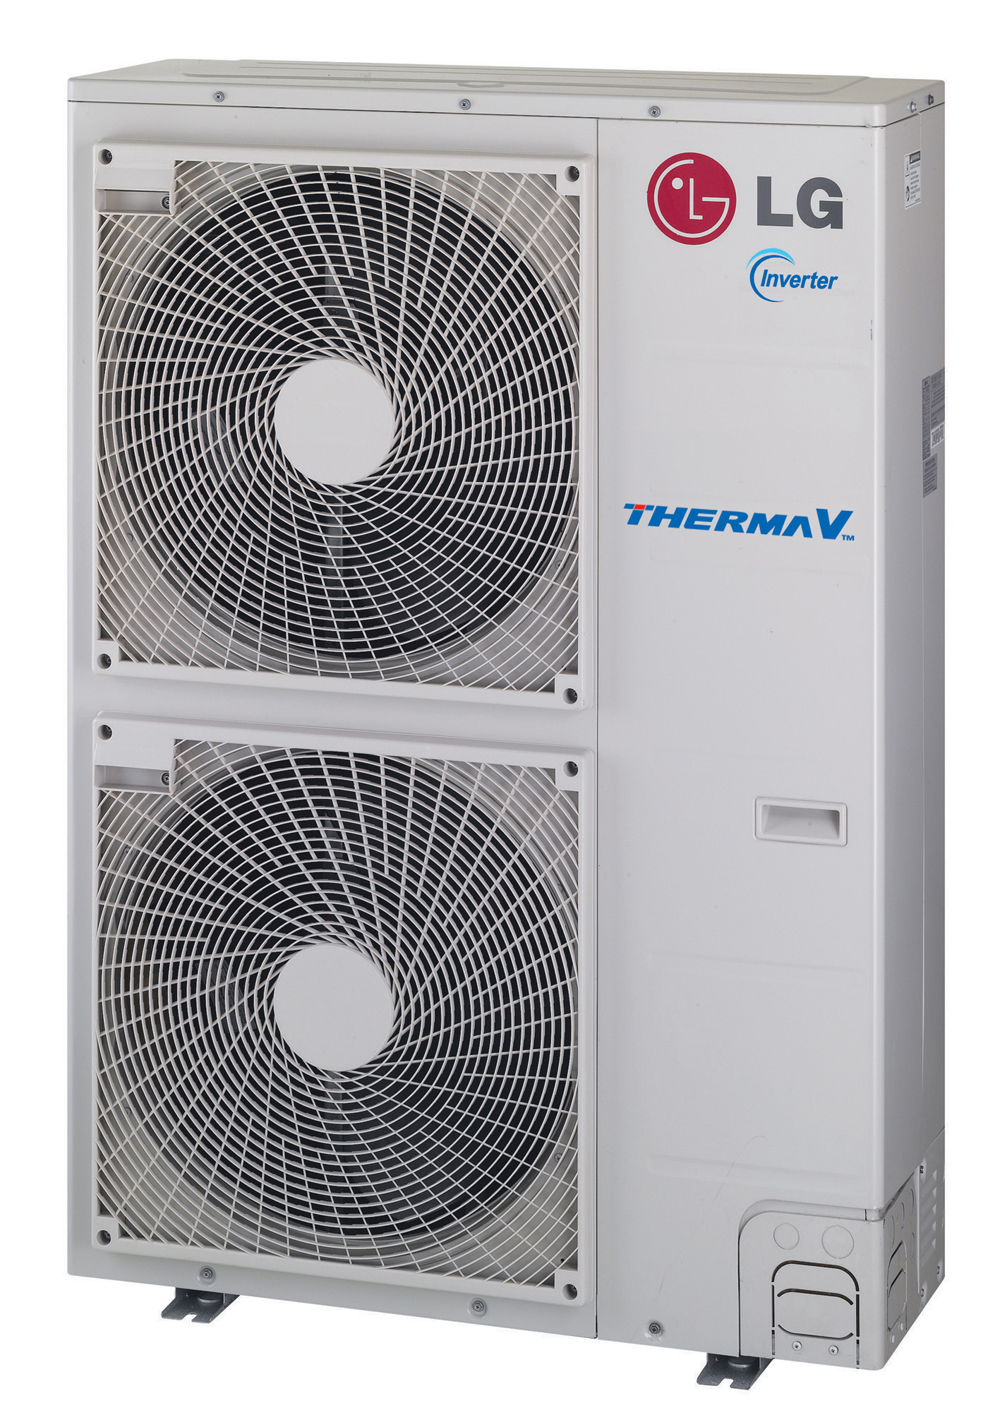 Outdoor unit of LG's Therma V commercial air conditioning solution